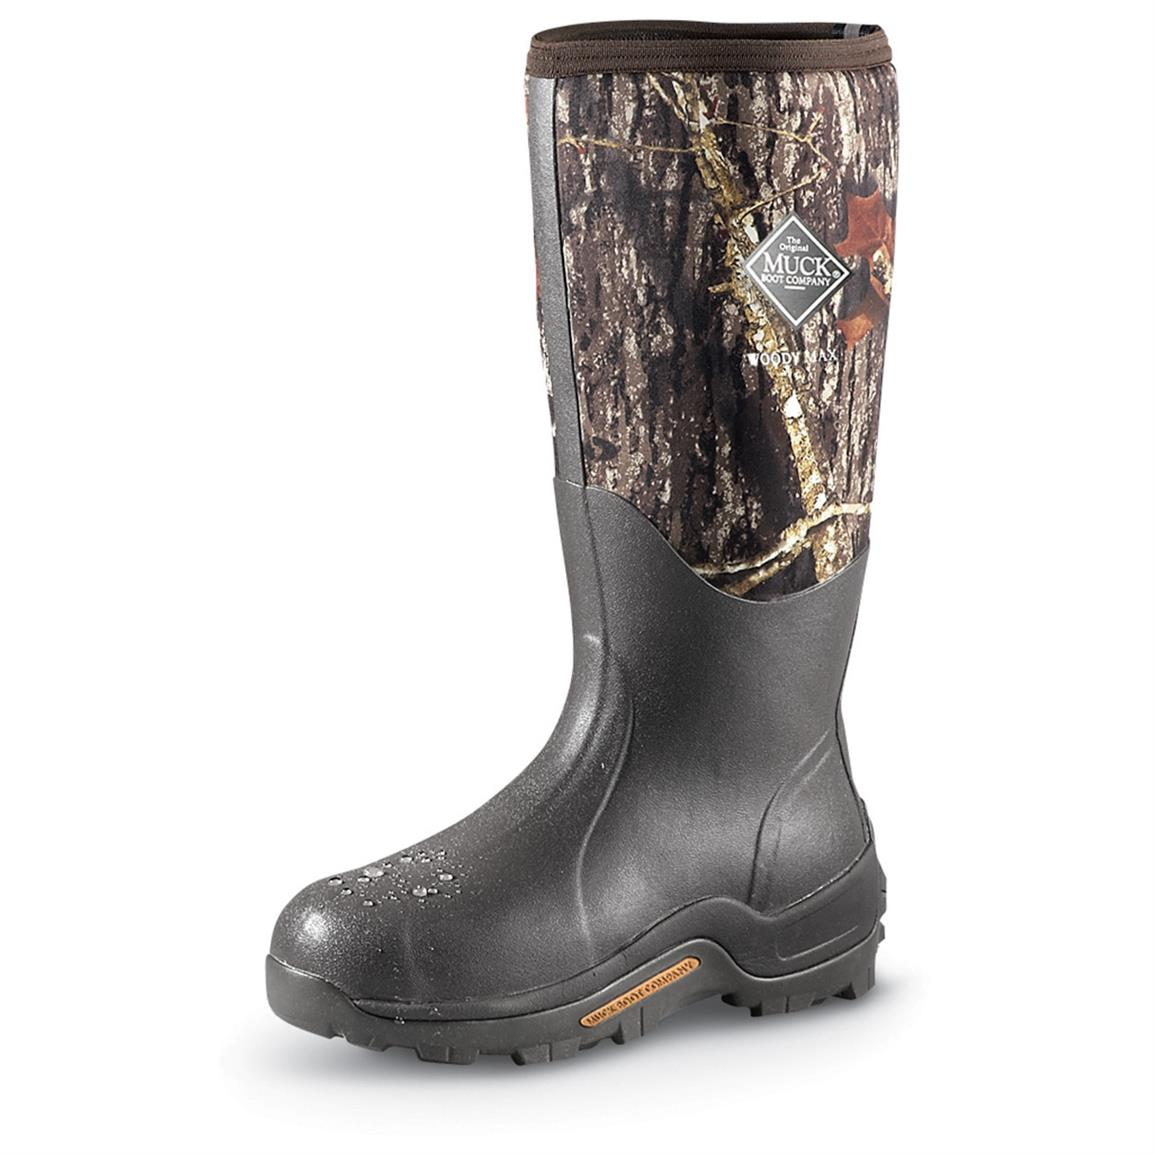 Muck Boot Men's Company Woody Max Waterproof Rubber Hunti...